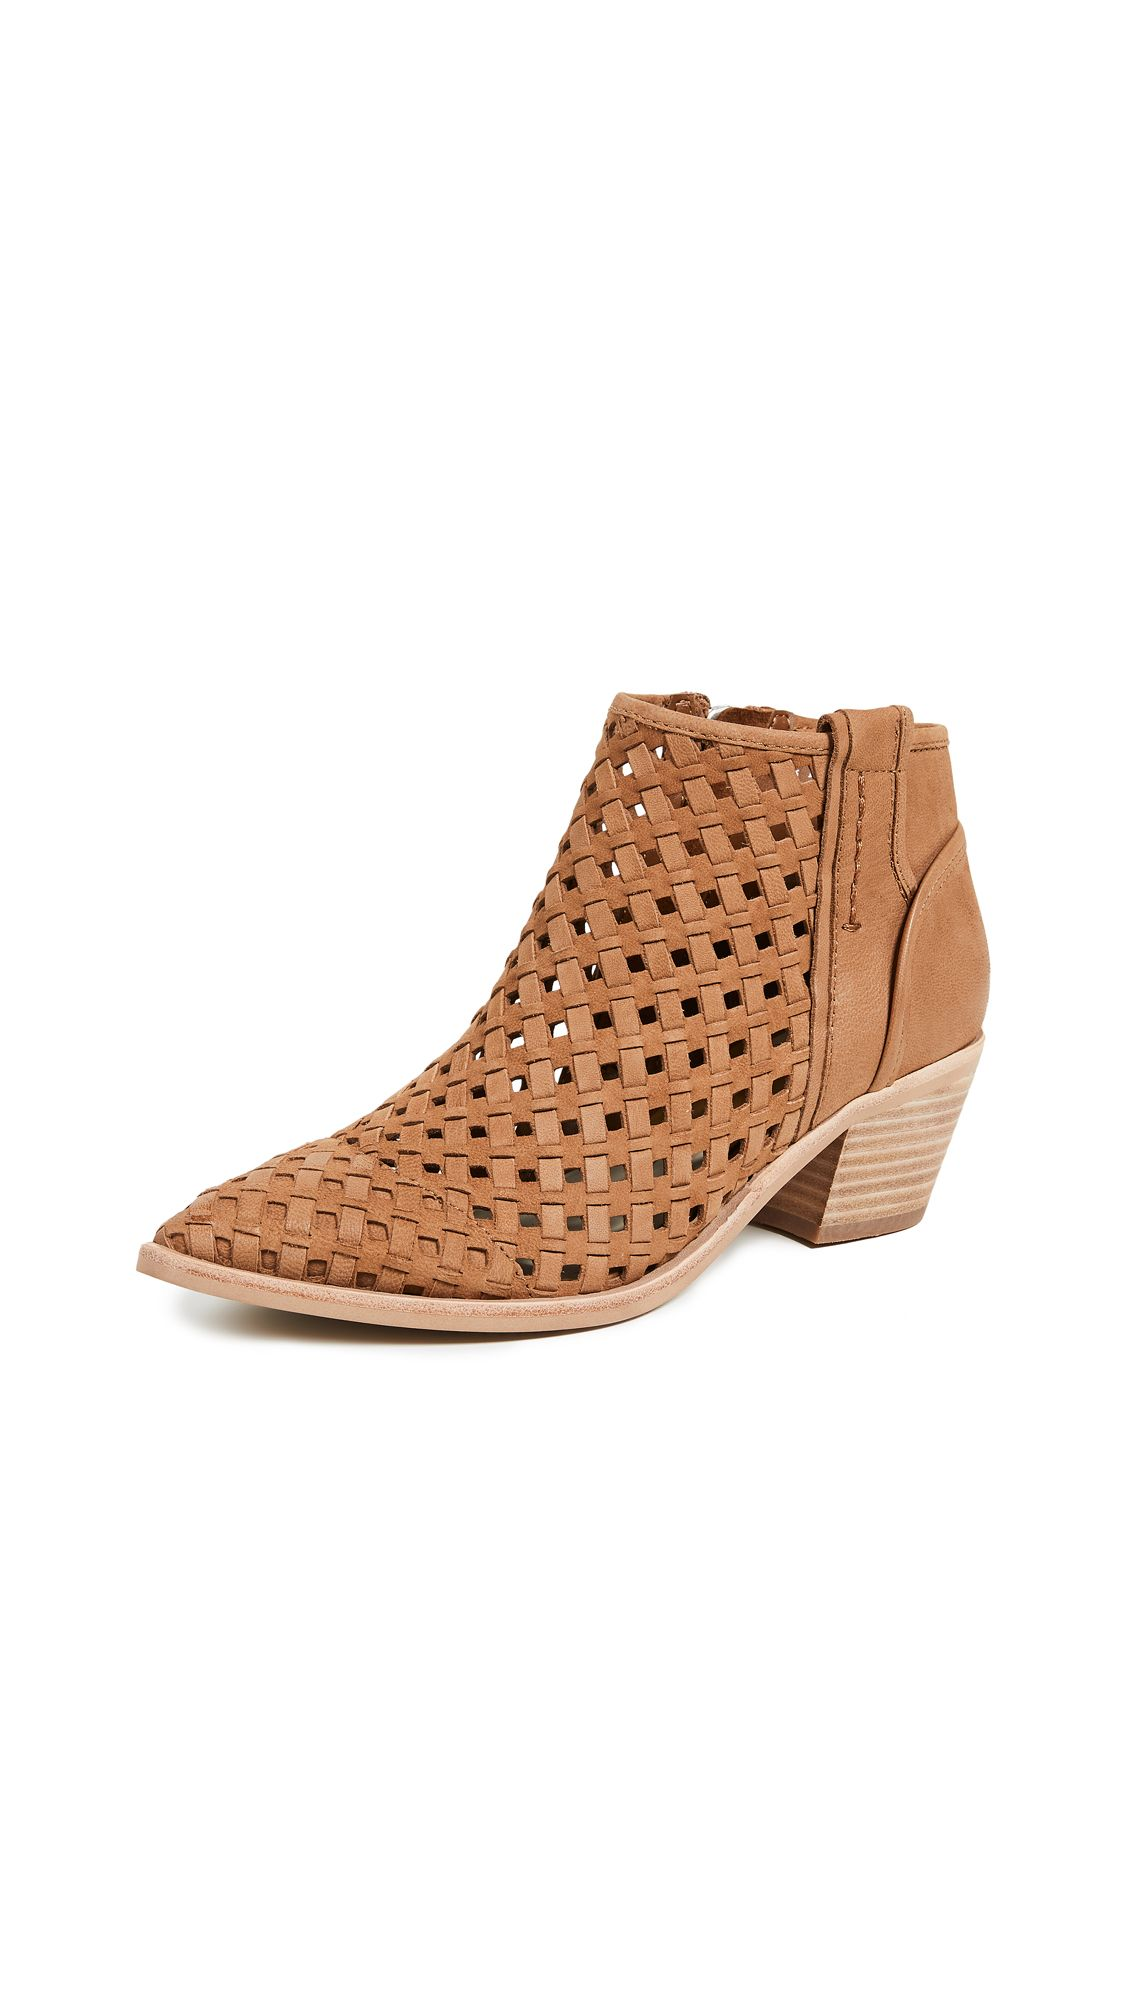 d20fcbd0ee0 Spence Woven Booties by Dolce Vita in Dk Saddle in 2018